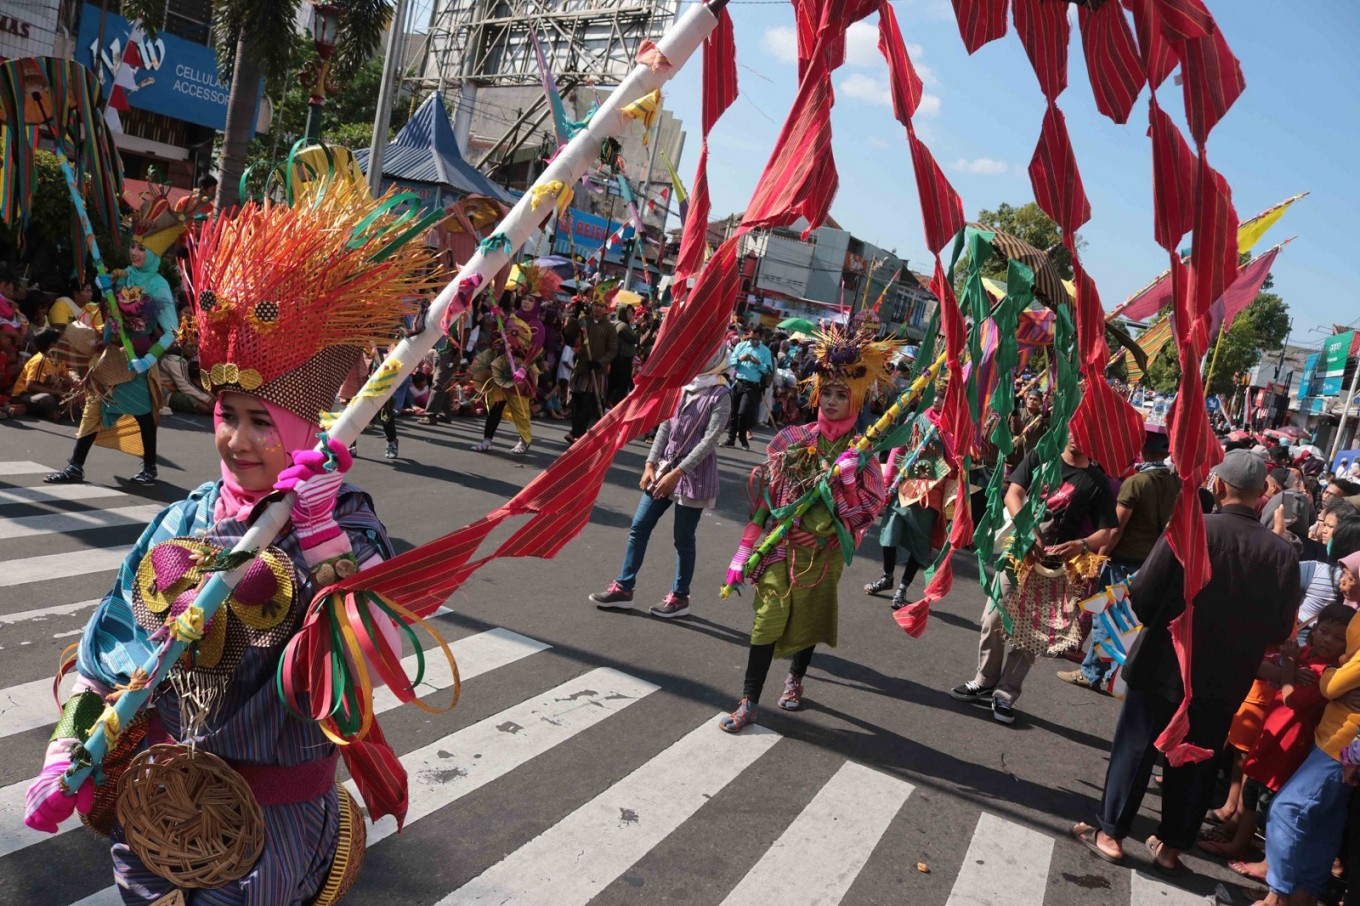 The 'lurik' carnival covered a distance of around 2 kilometers in Jl. Pemuda, Klaten, Central Java.